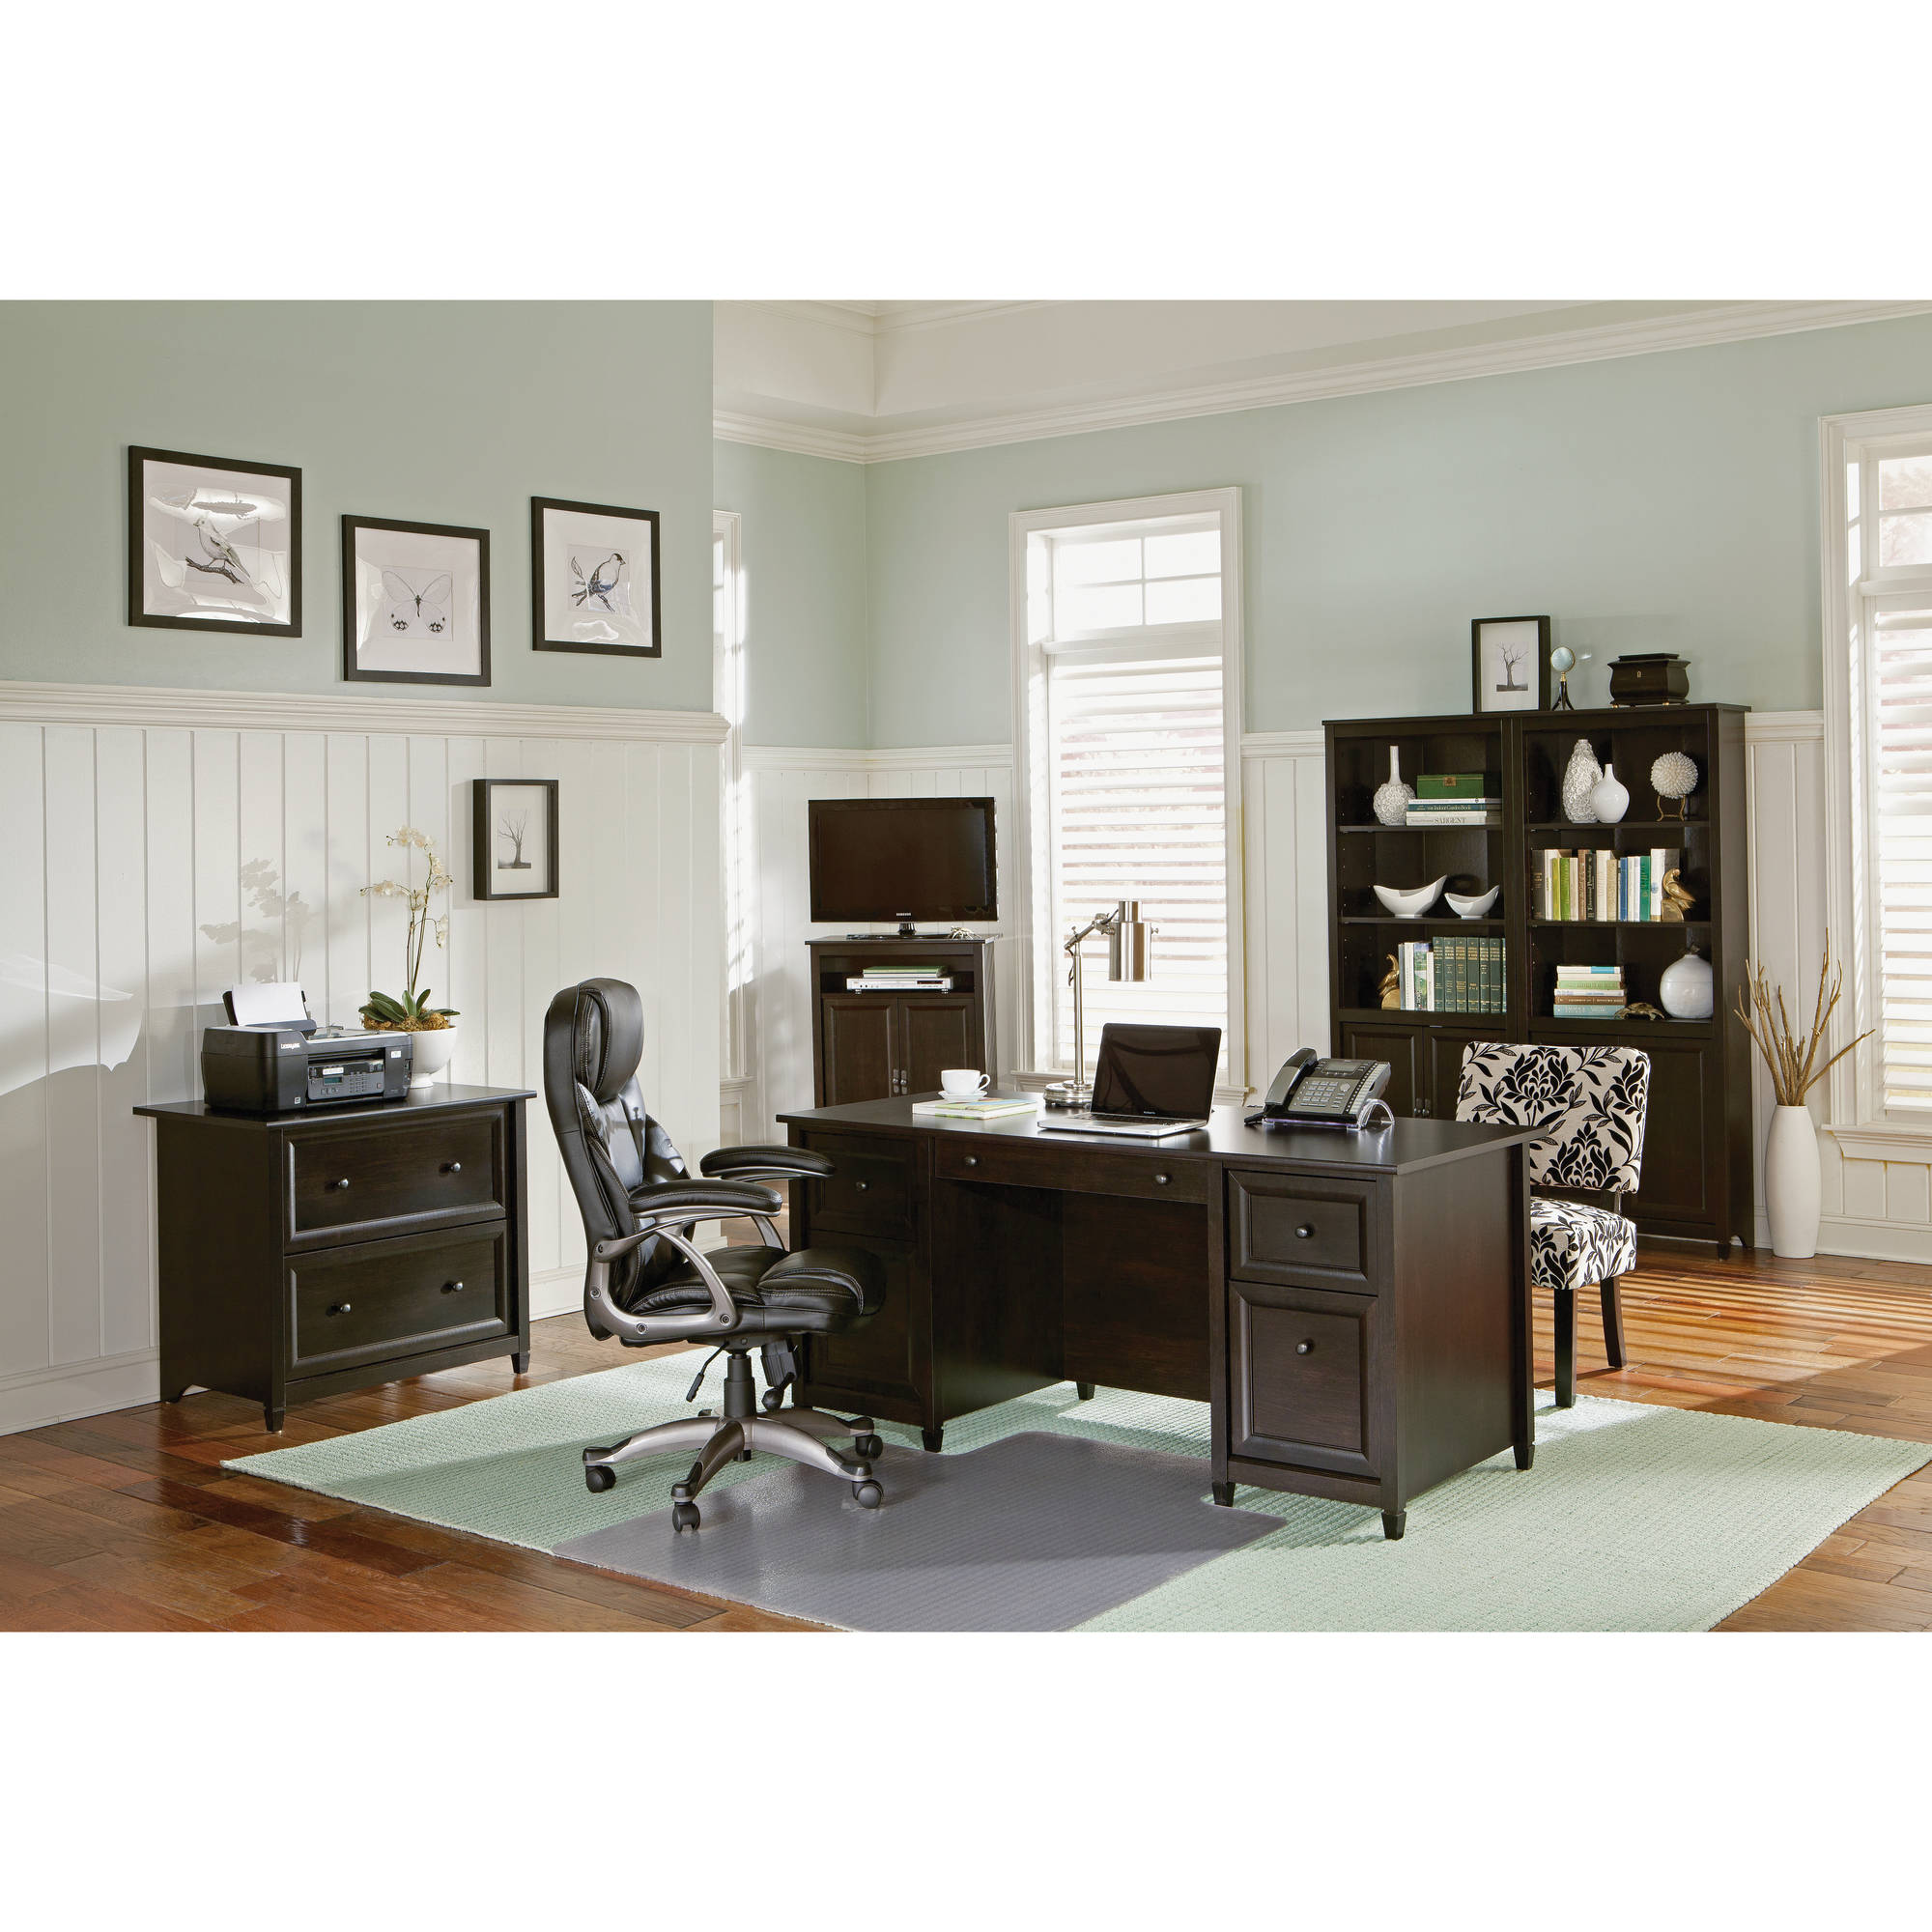 25 Cool Modular Home Office Furniture Designs: Sauder Edge Water Office Furniture Collection